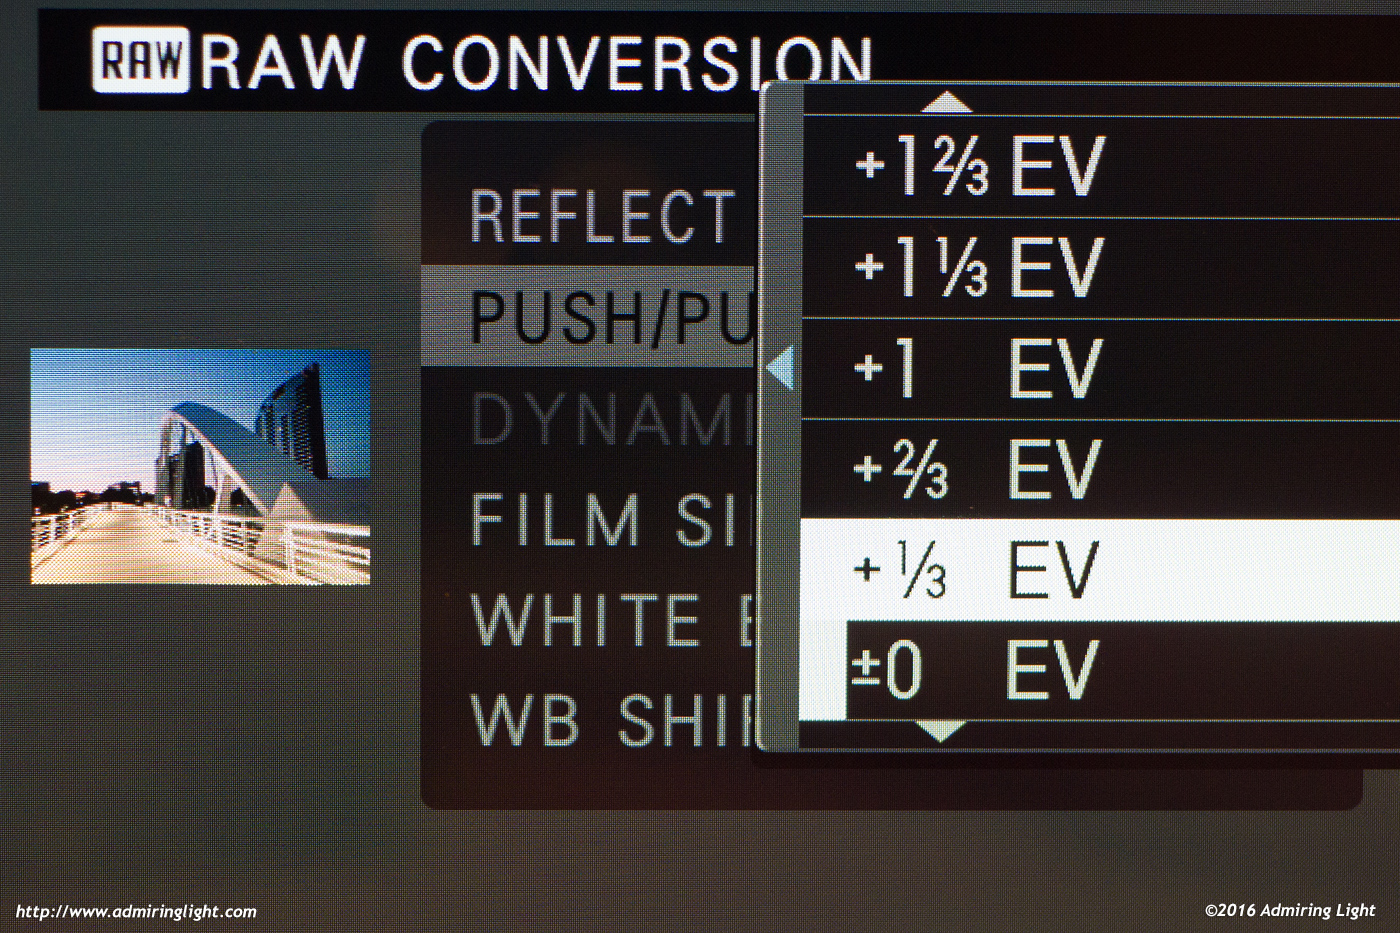 RAW conversion is the same as on other Fuji cameras, but there's no need to change what's already very well done.